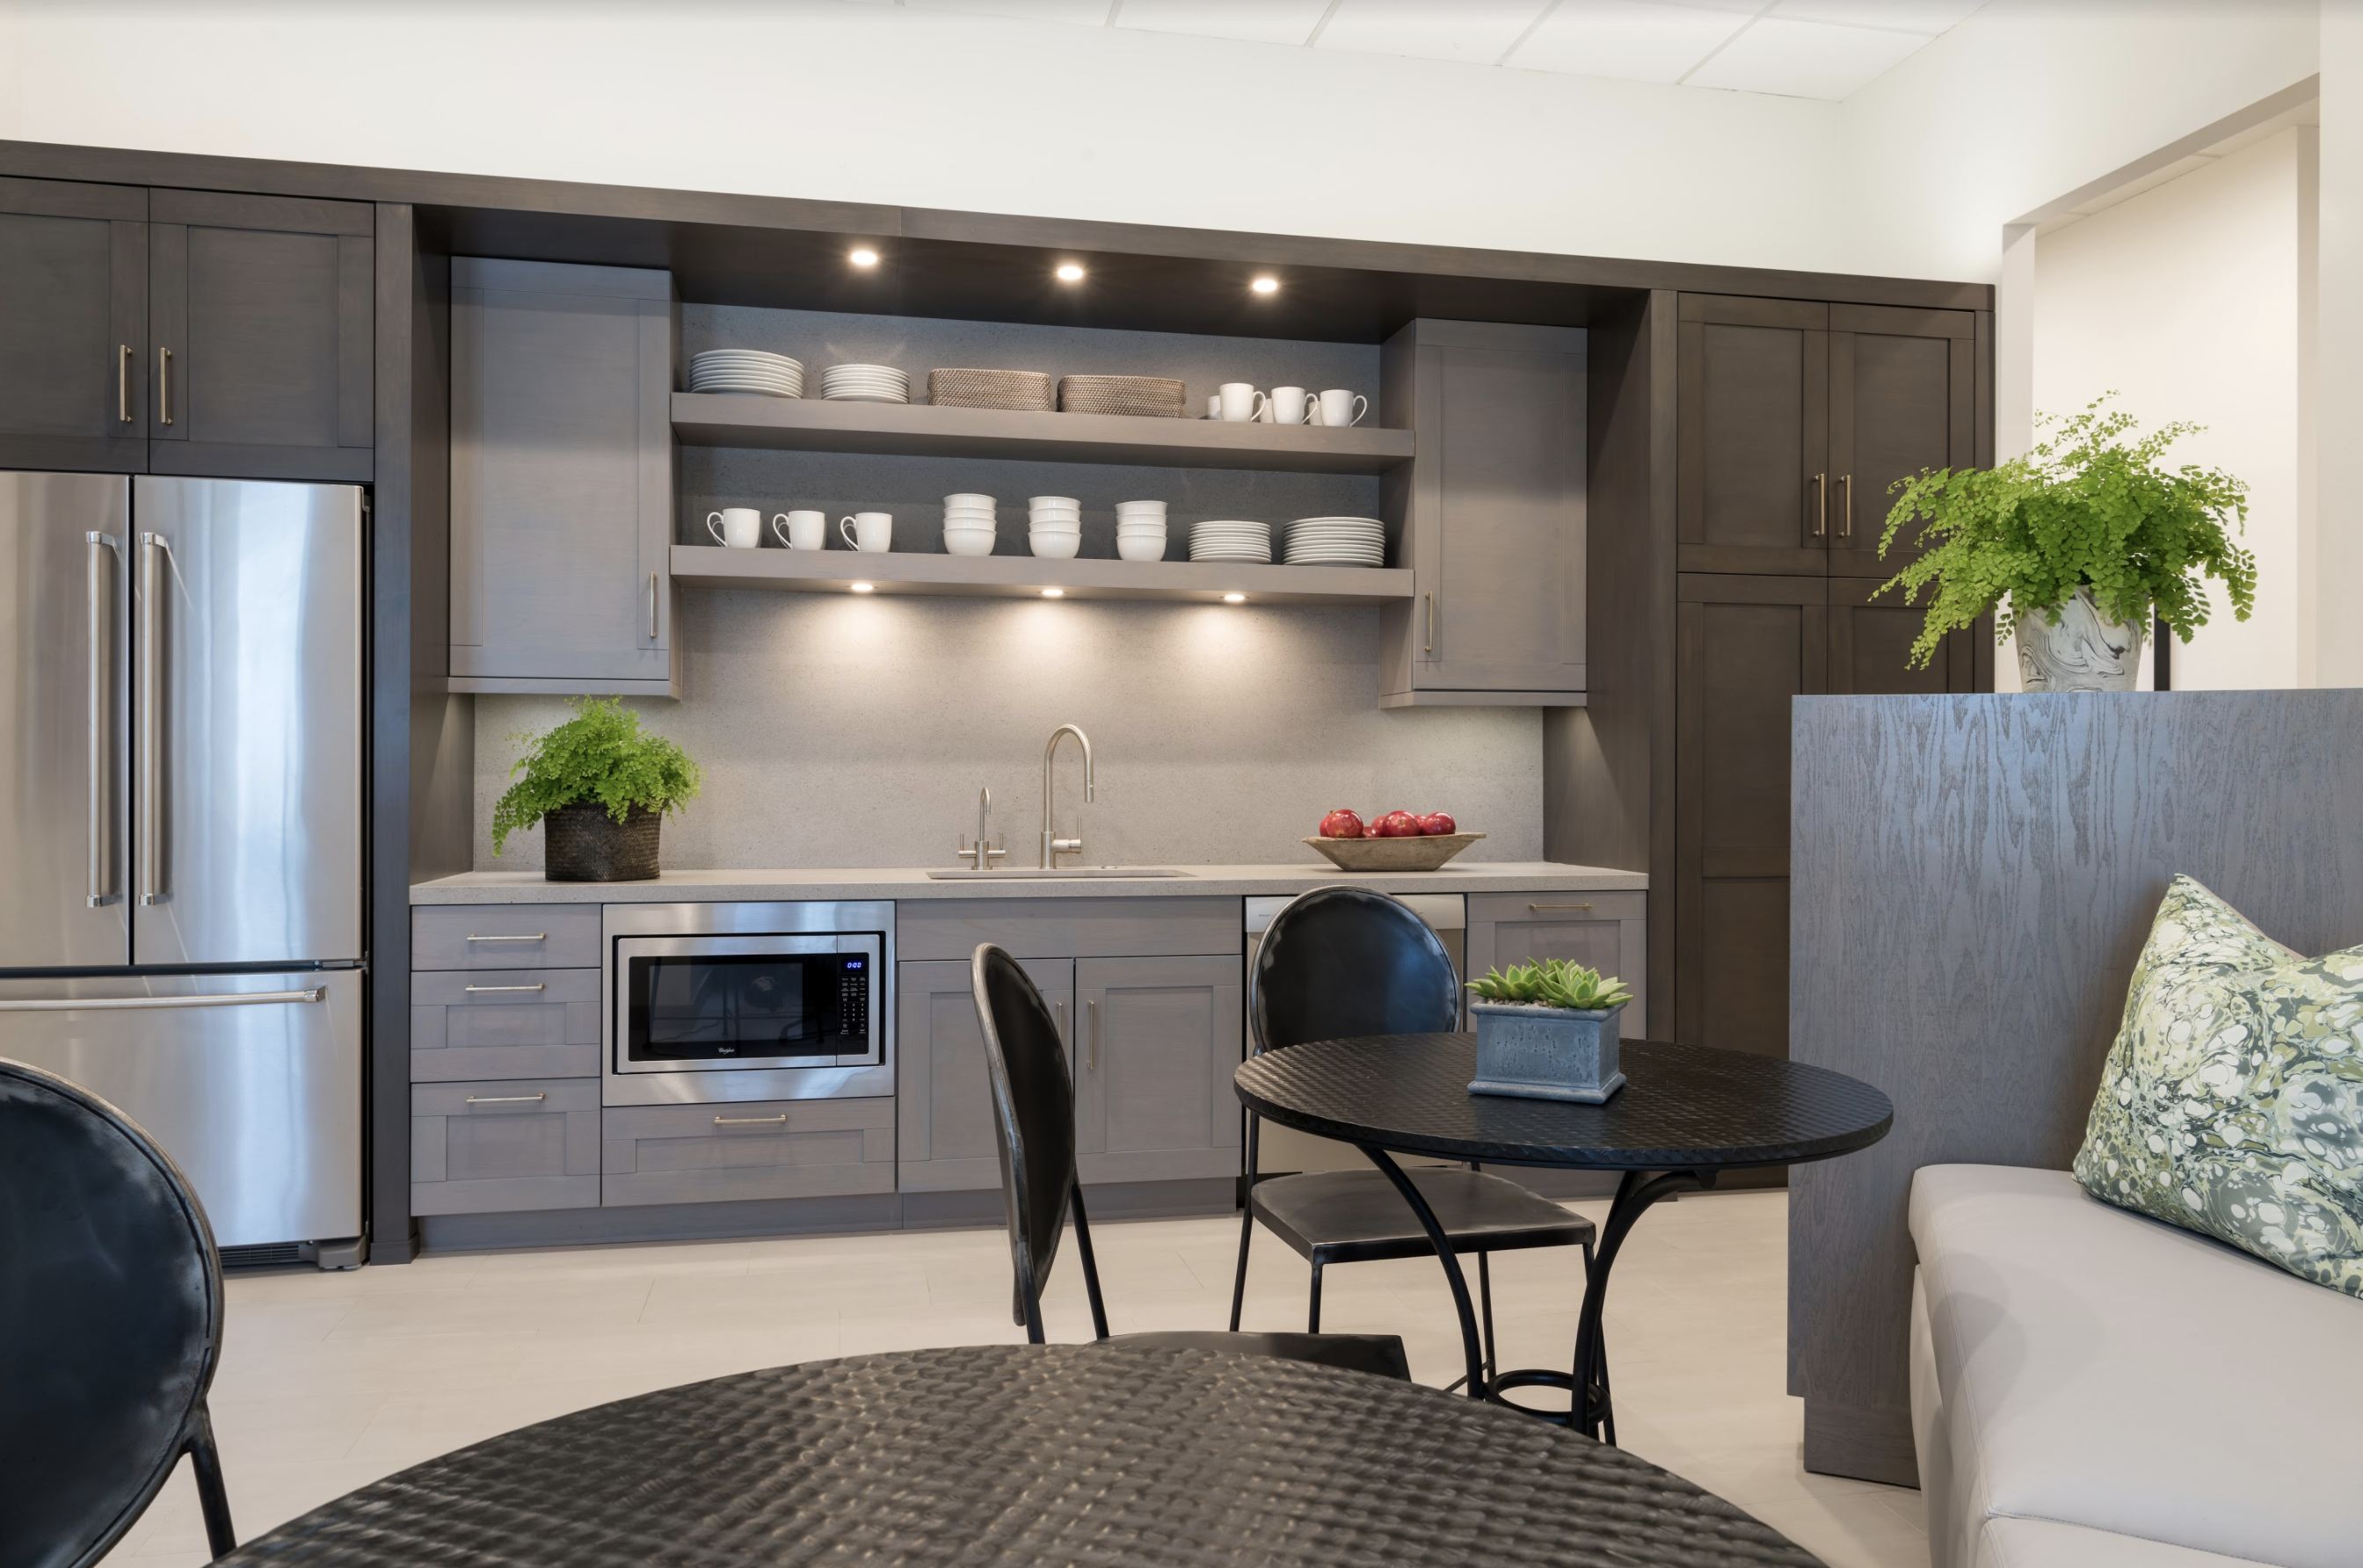 A functional, elegant kitchen serves as a brainstorming center for the team at Houston based Lucas Eilers Design Associates.